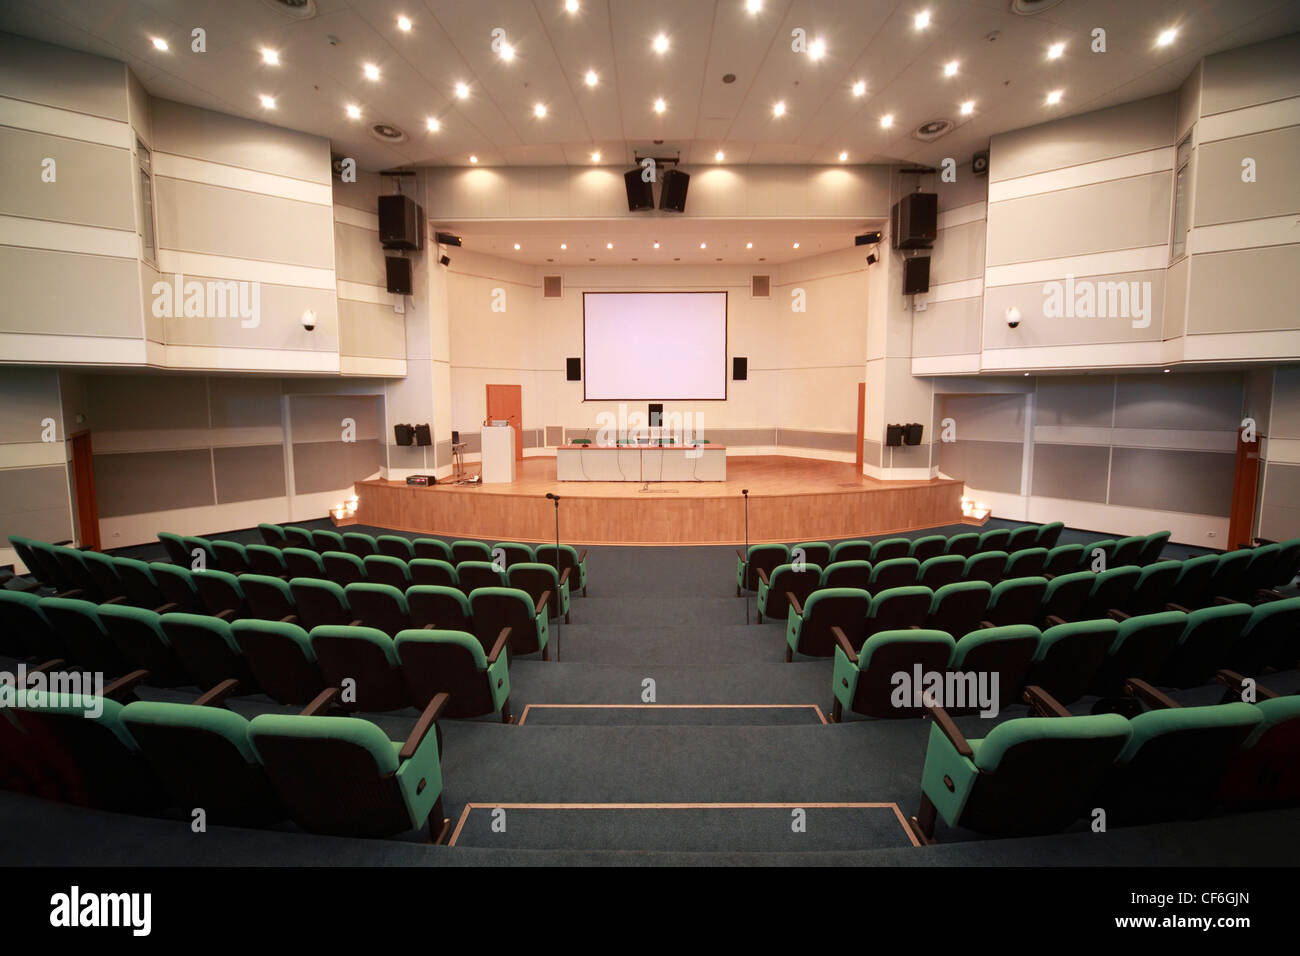 Registration of  scene and conference hall interior. View from  front entrance - Stock Image